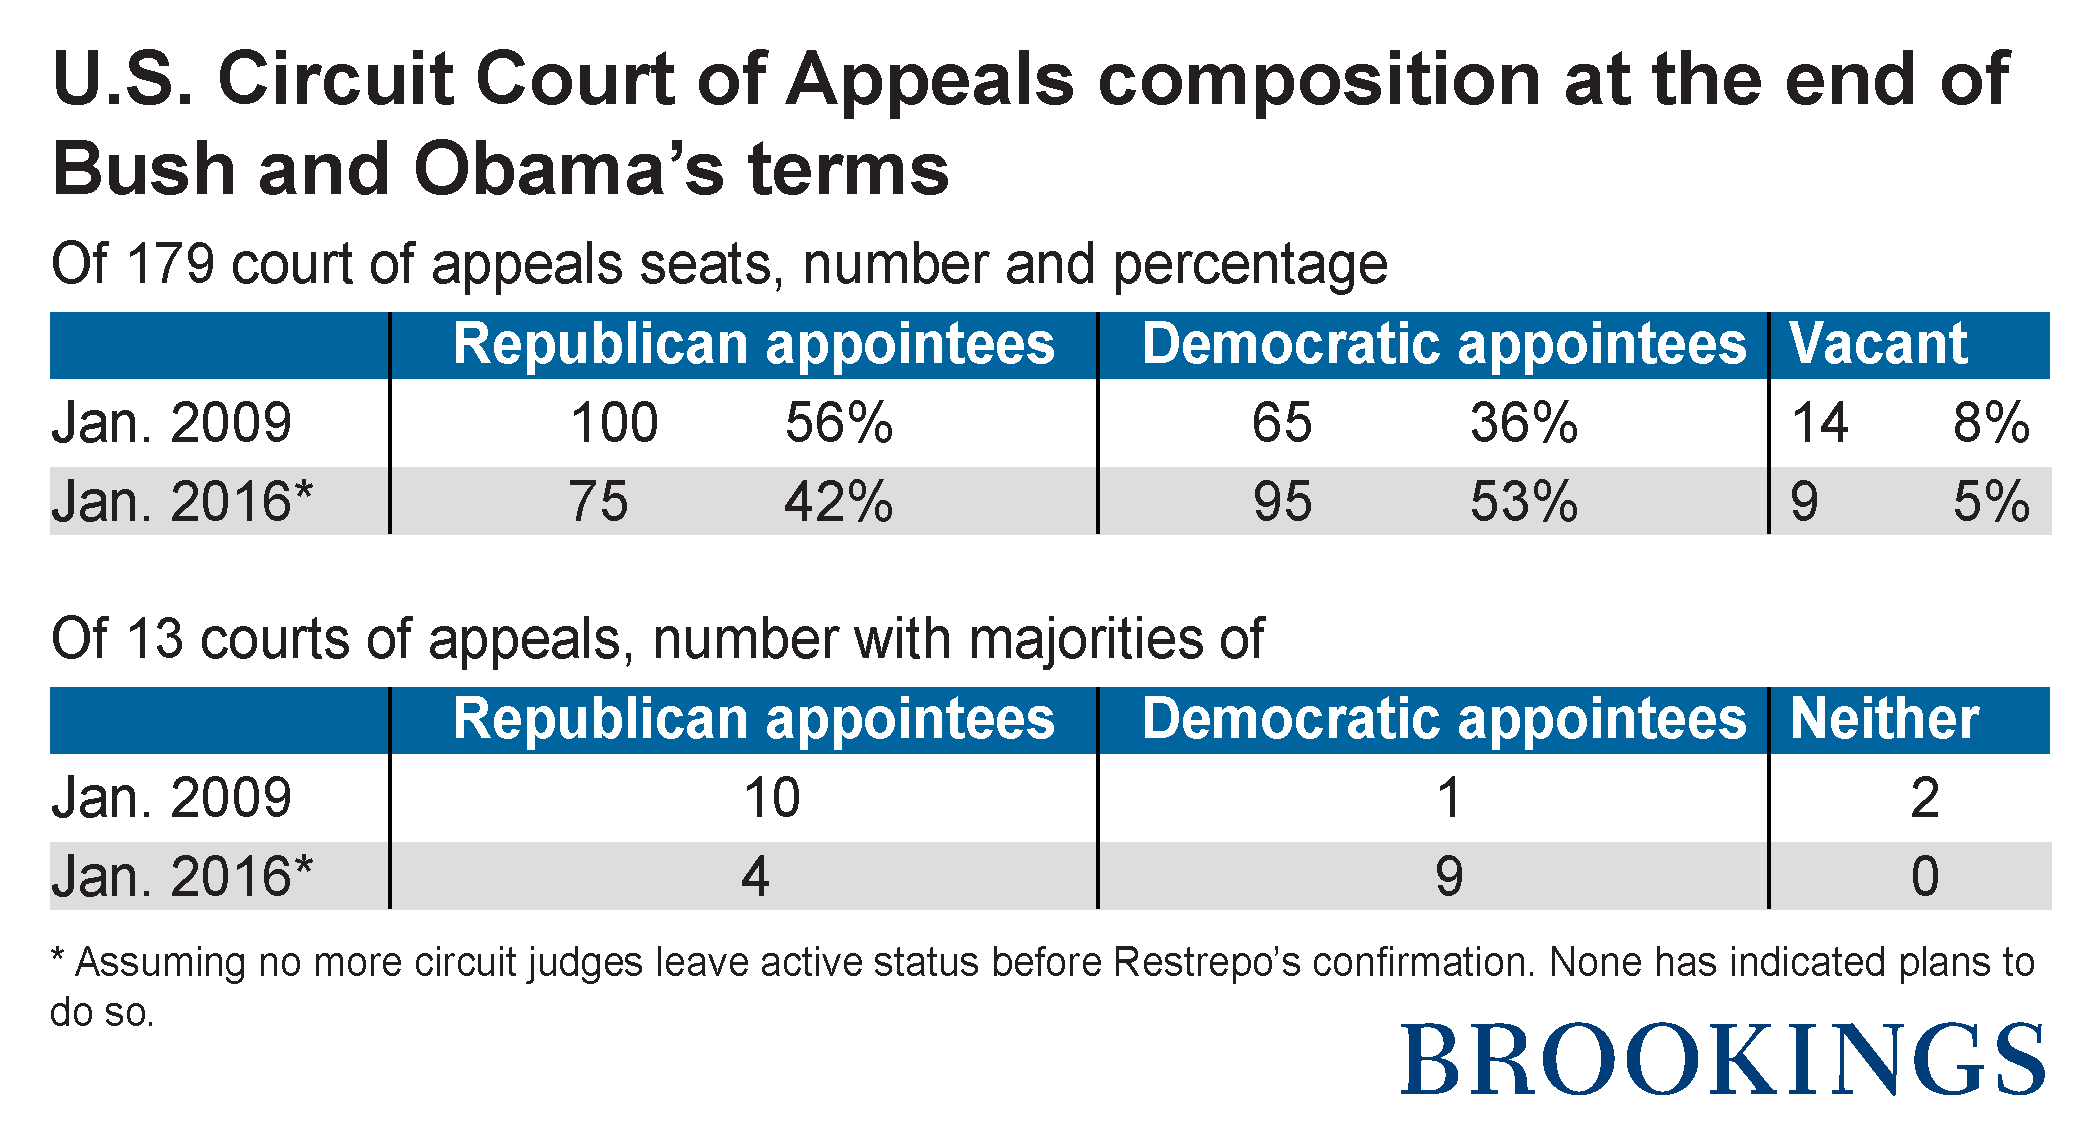 No further Obama impact on the make-up of Courts of Appeals